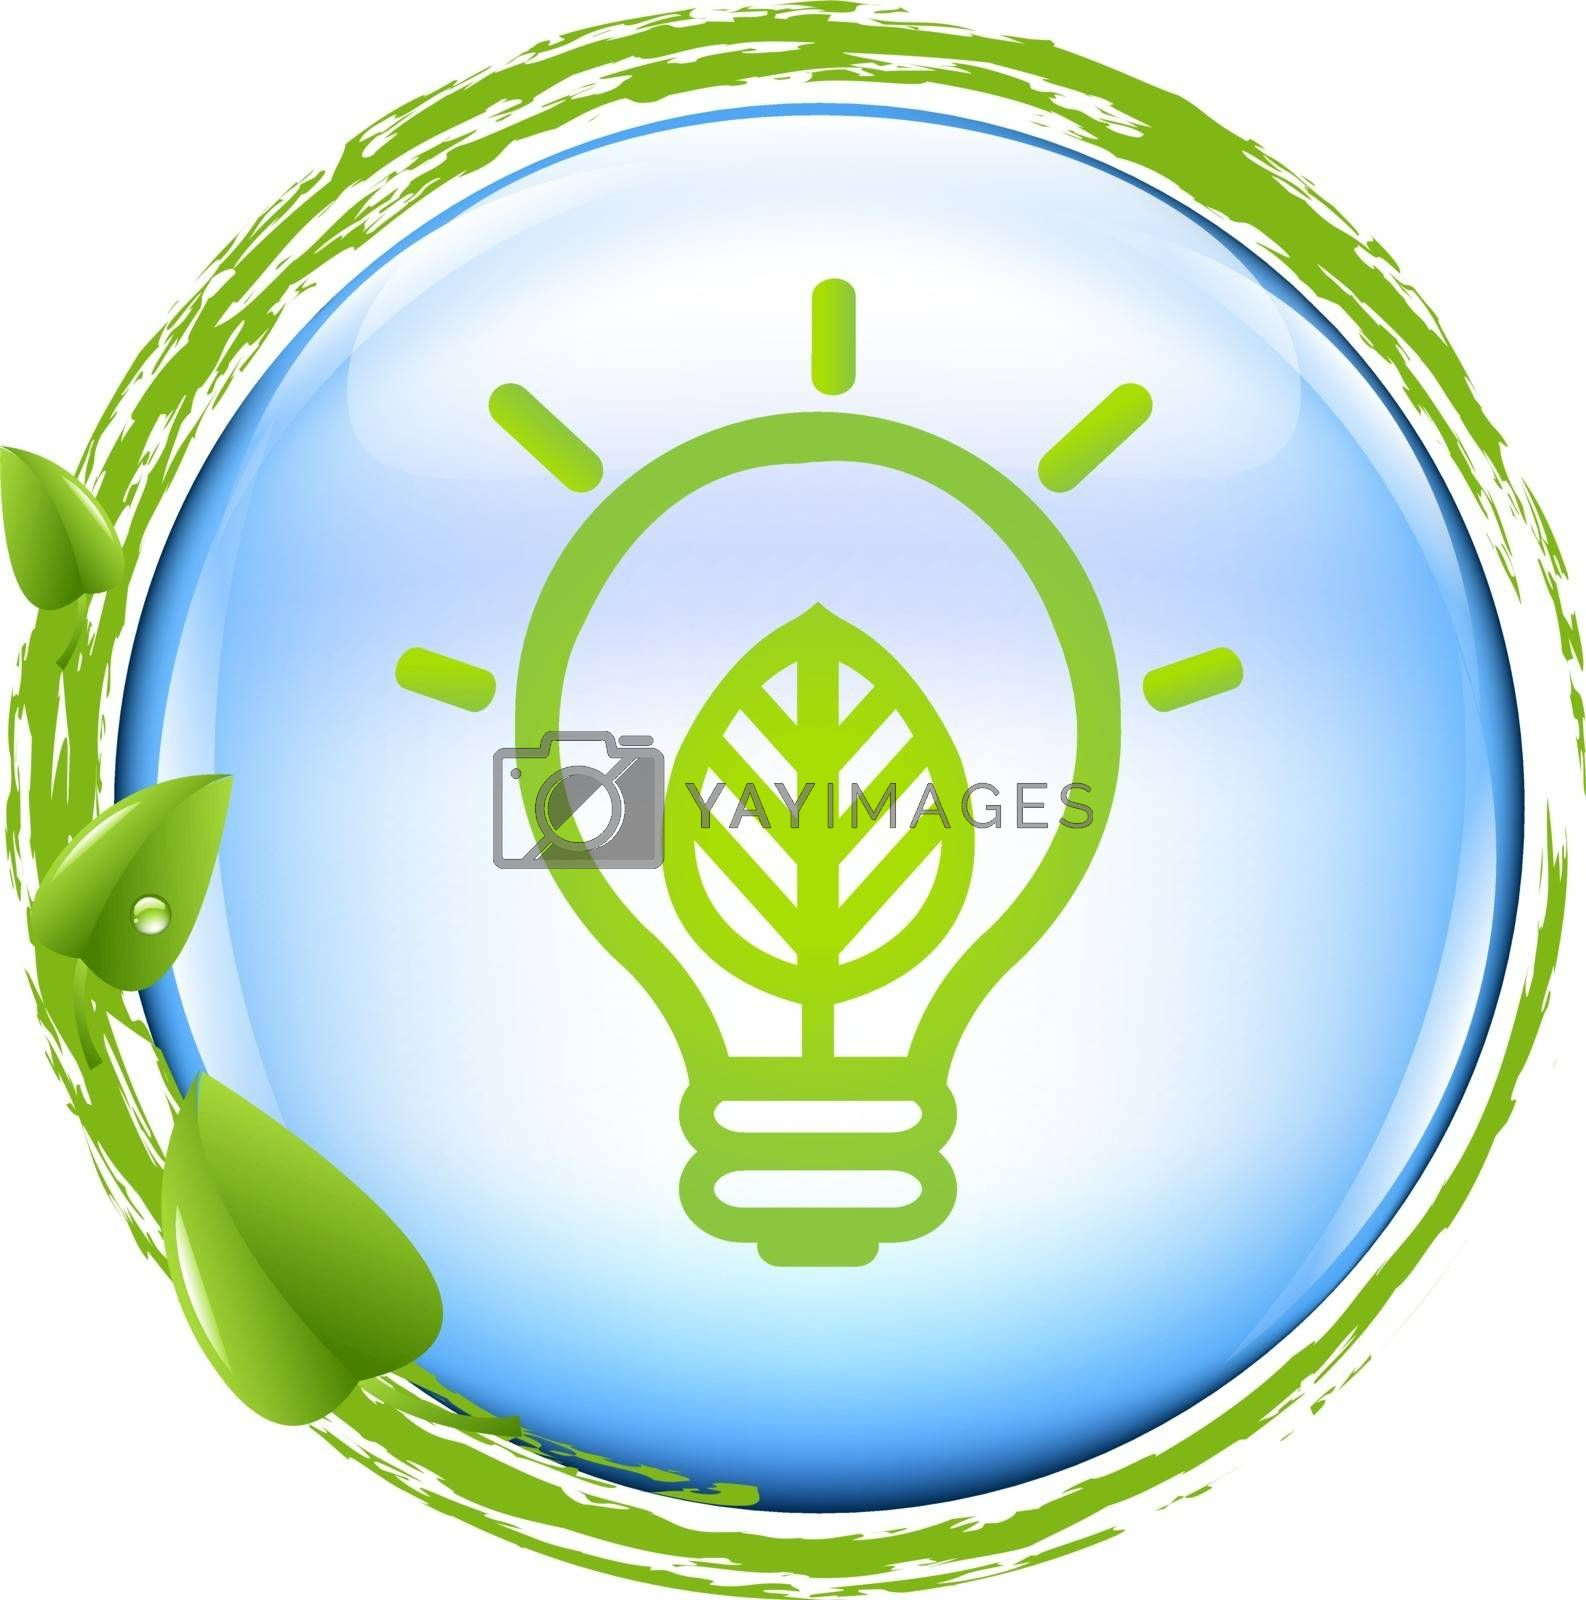 Blue Ball And Green Eco Lamp, With Gradient Mesh, Vector Illustration